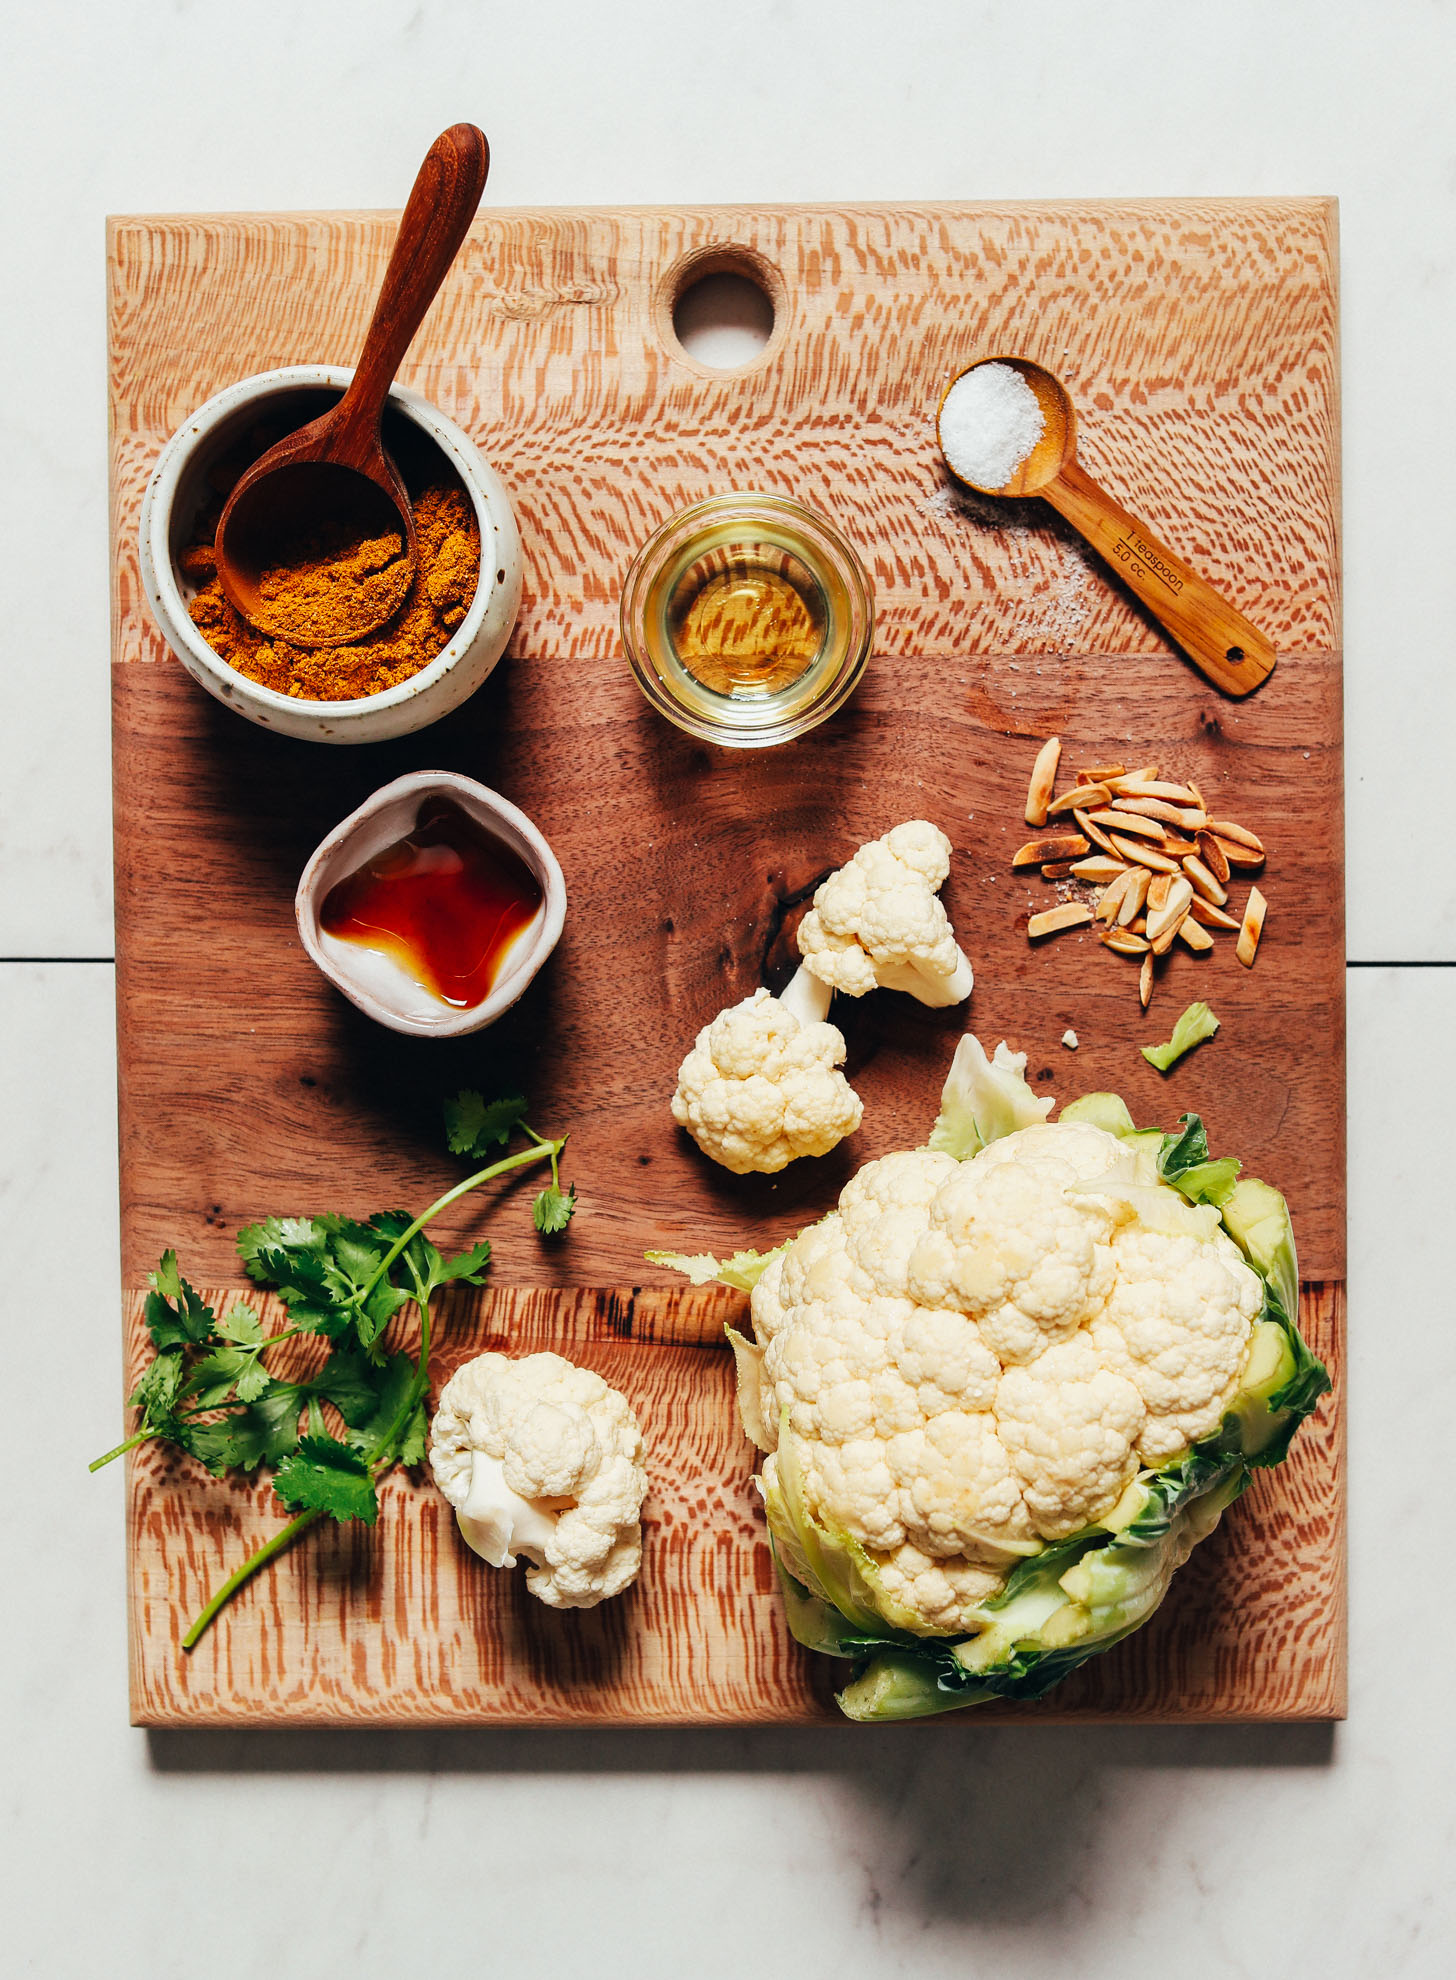 Wood cutting board with ingredients for making our Quick Crispy Cauliflower recipe